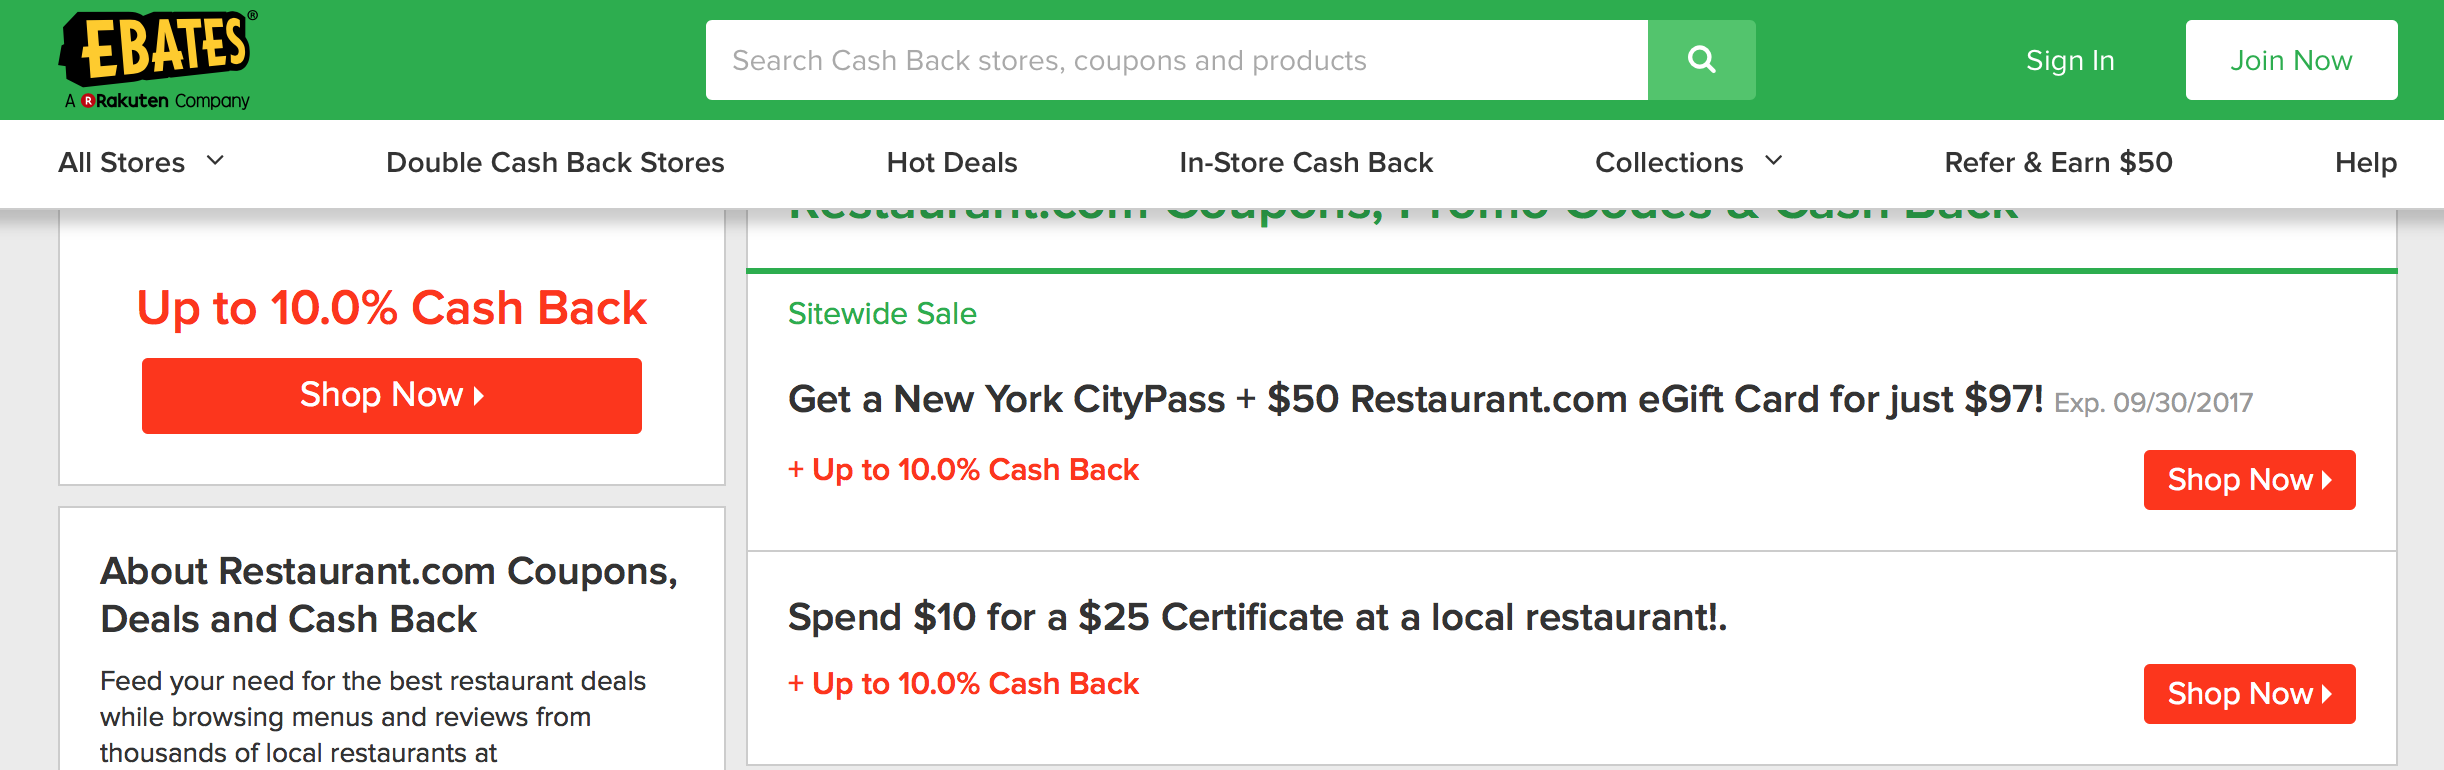 Promo Codes For Car Rent.Enterprise Car Rental Coupons ...